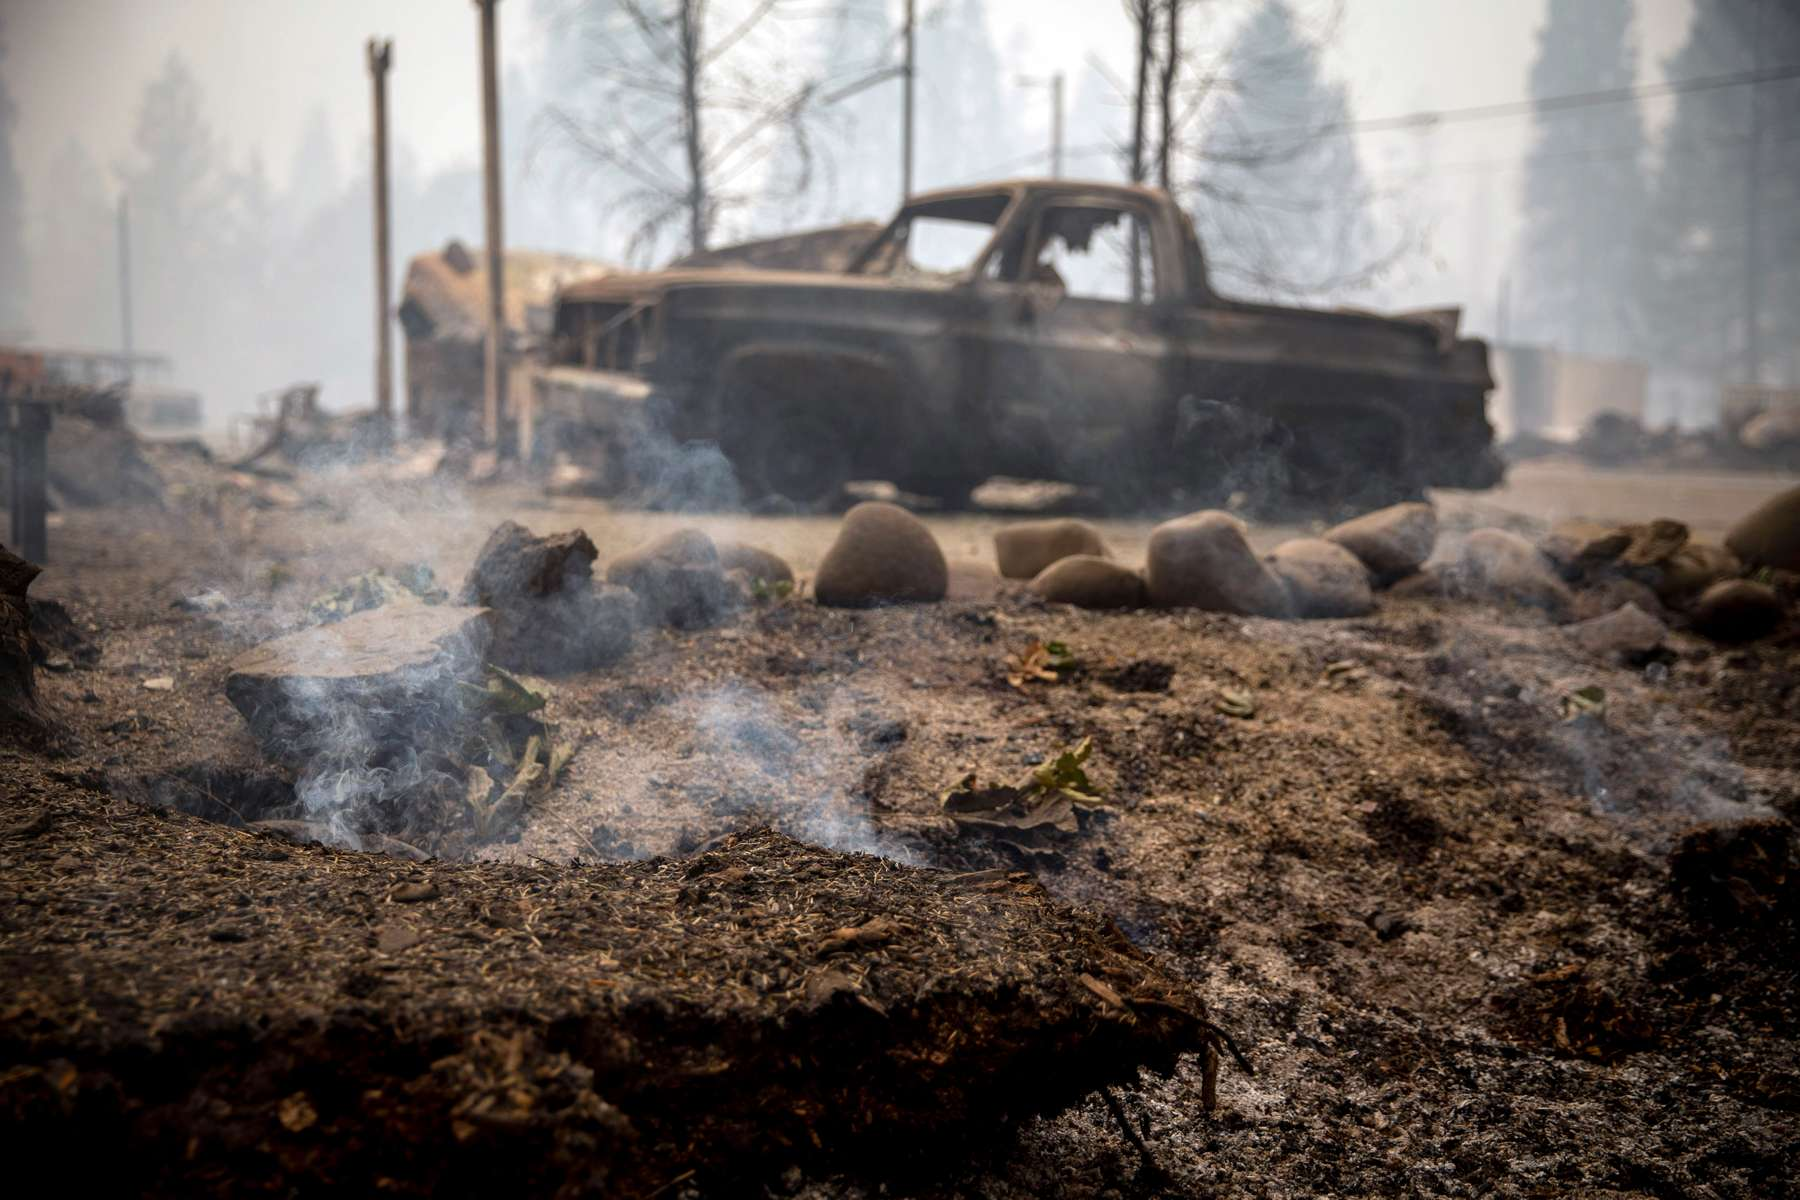 September 15, 2020: The ground still smokes in Blue River, Ore., Sept. 15, 2020 eight days after the Holiday Farm Fire swept through its business district. More than 300 structures have been confirmed destroyed in the fire. Mandatory Credit: Pool photo/Andy Nelson/The Register-Guard via USA TODAY NETWORK